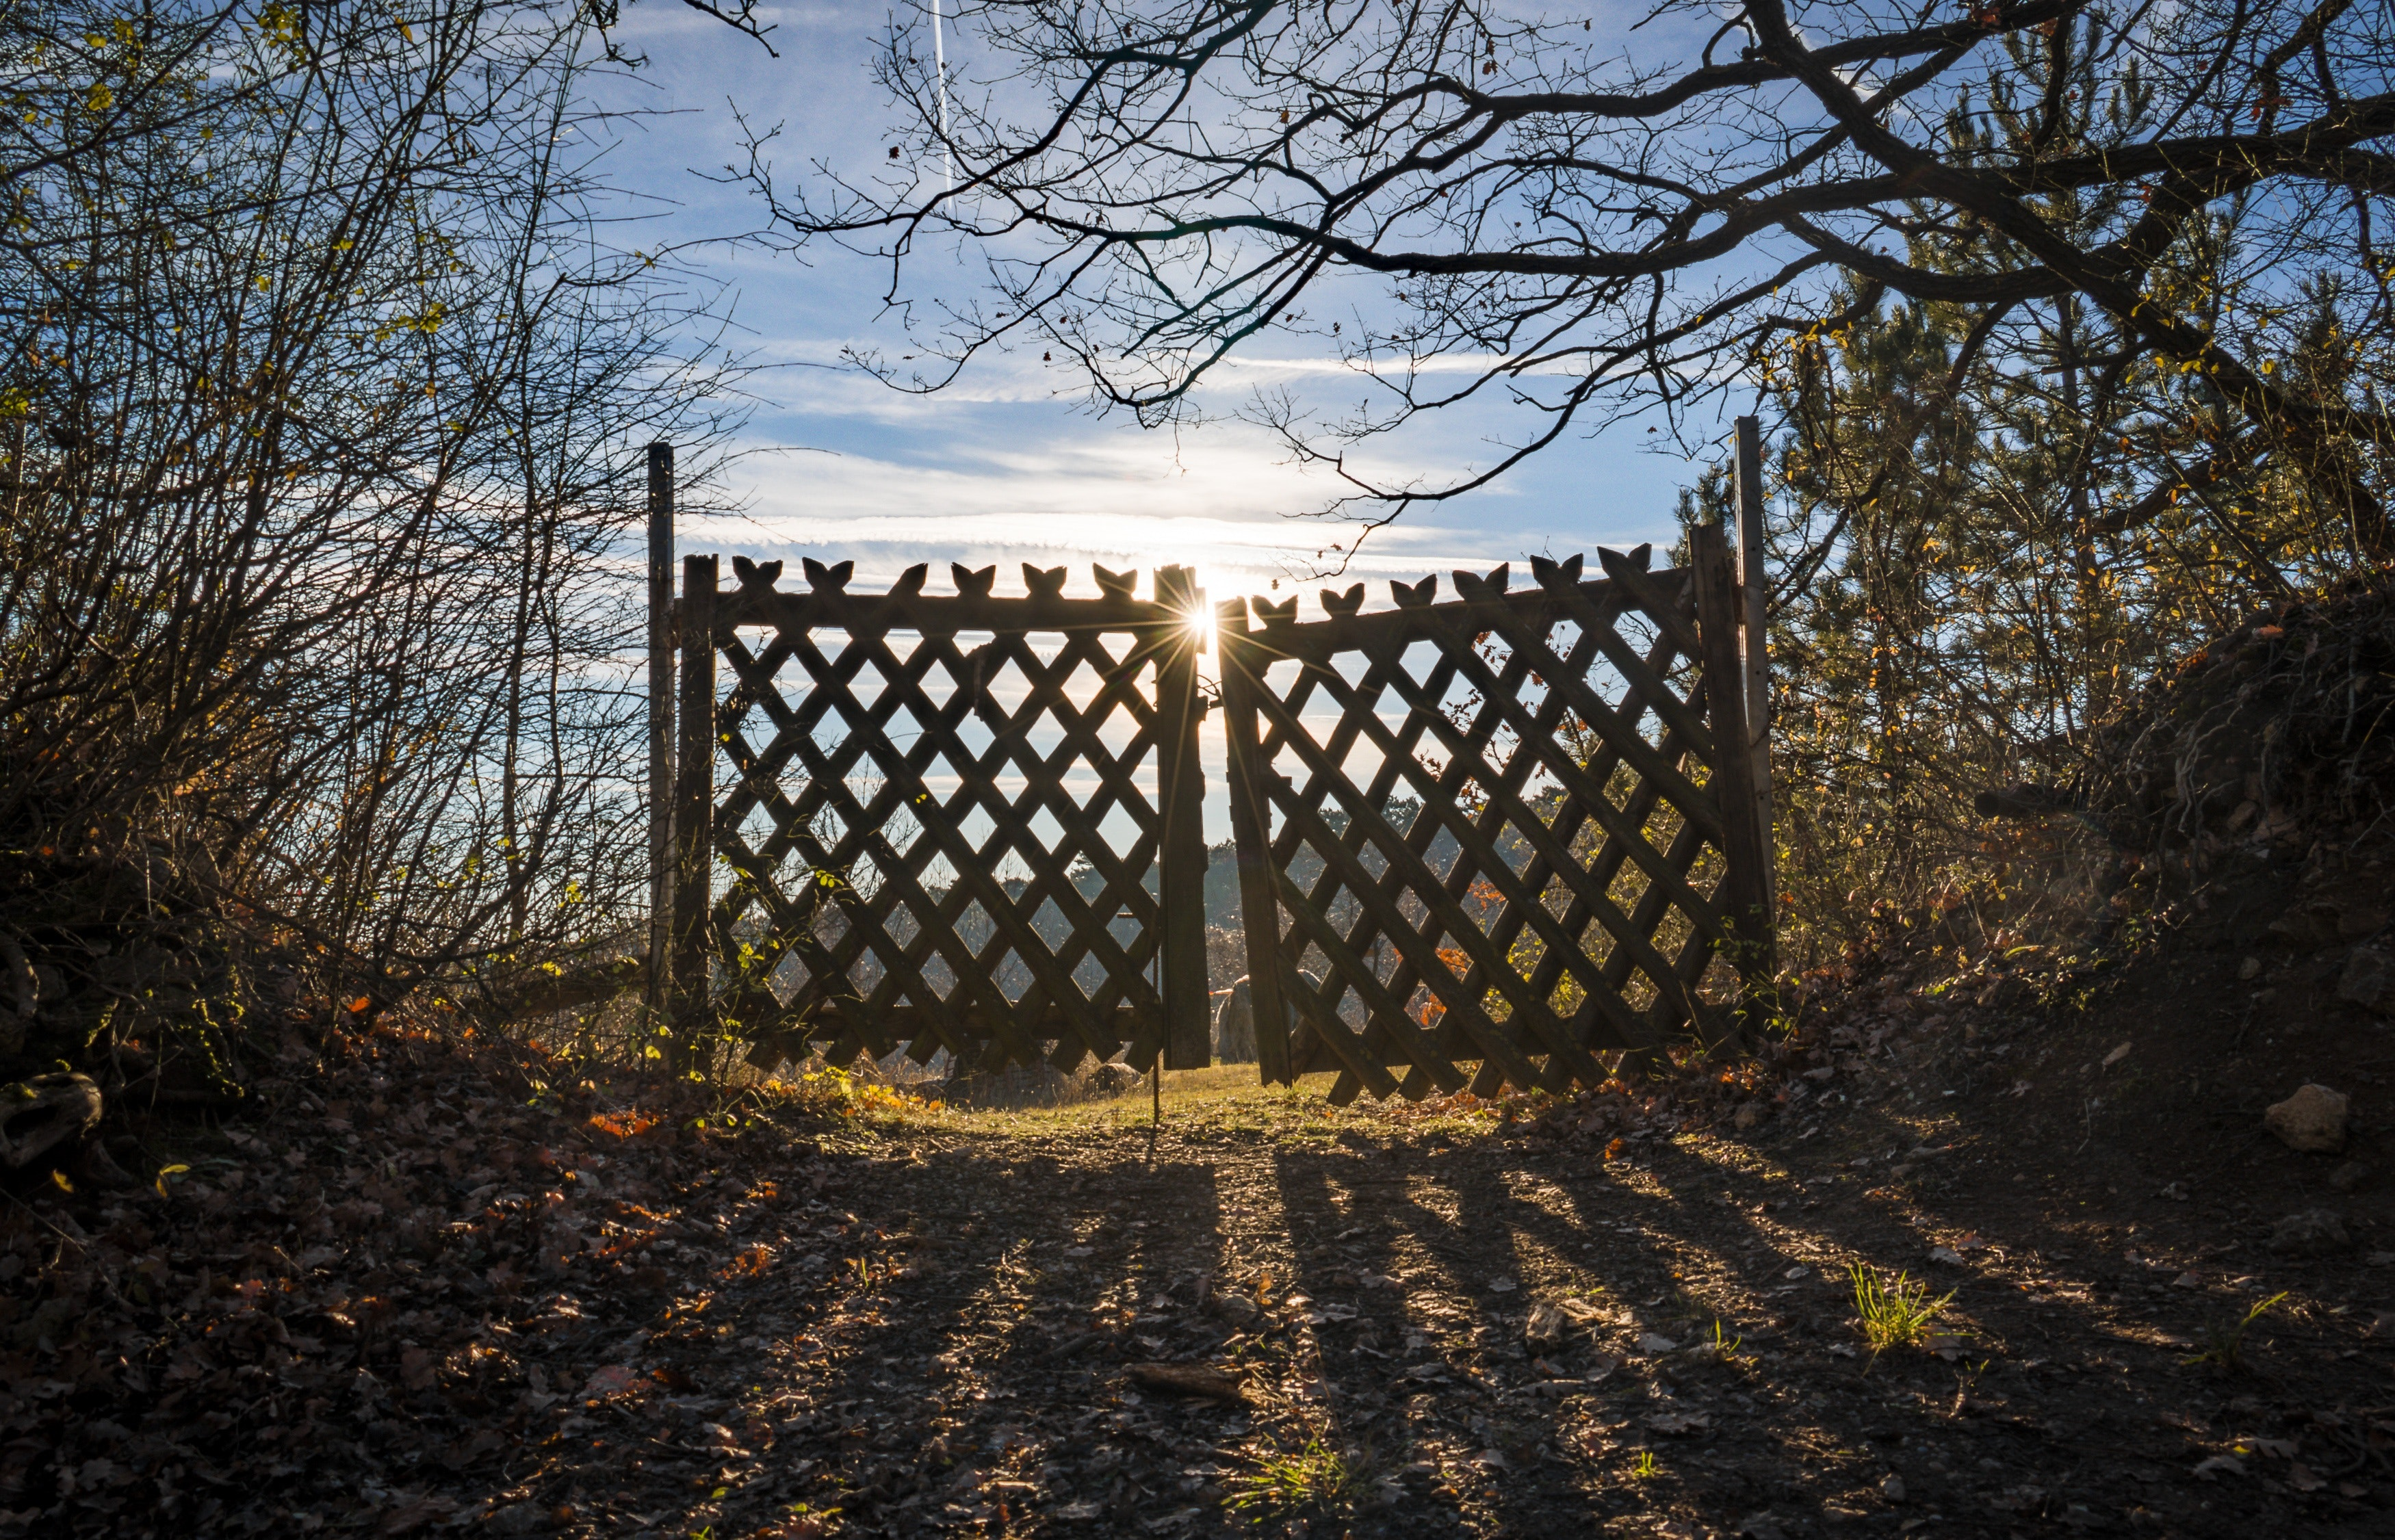 Brown Wooden Door, Clouds, Sun, Wooden gate, Tree trunks, HQ Photo